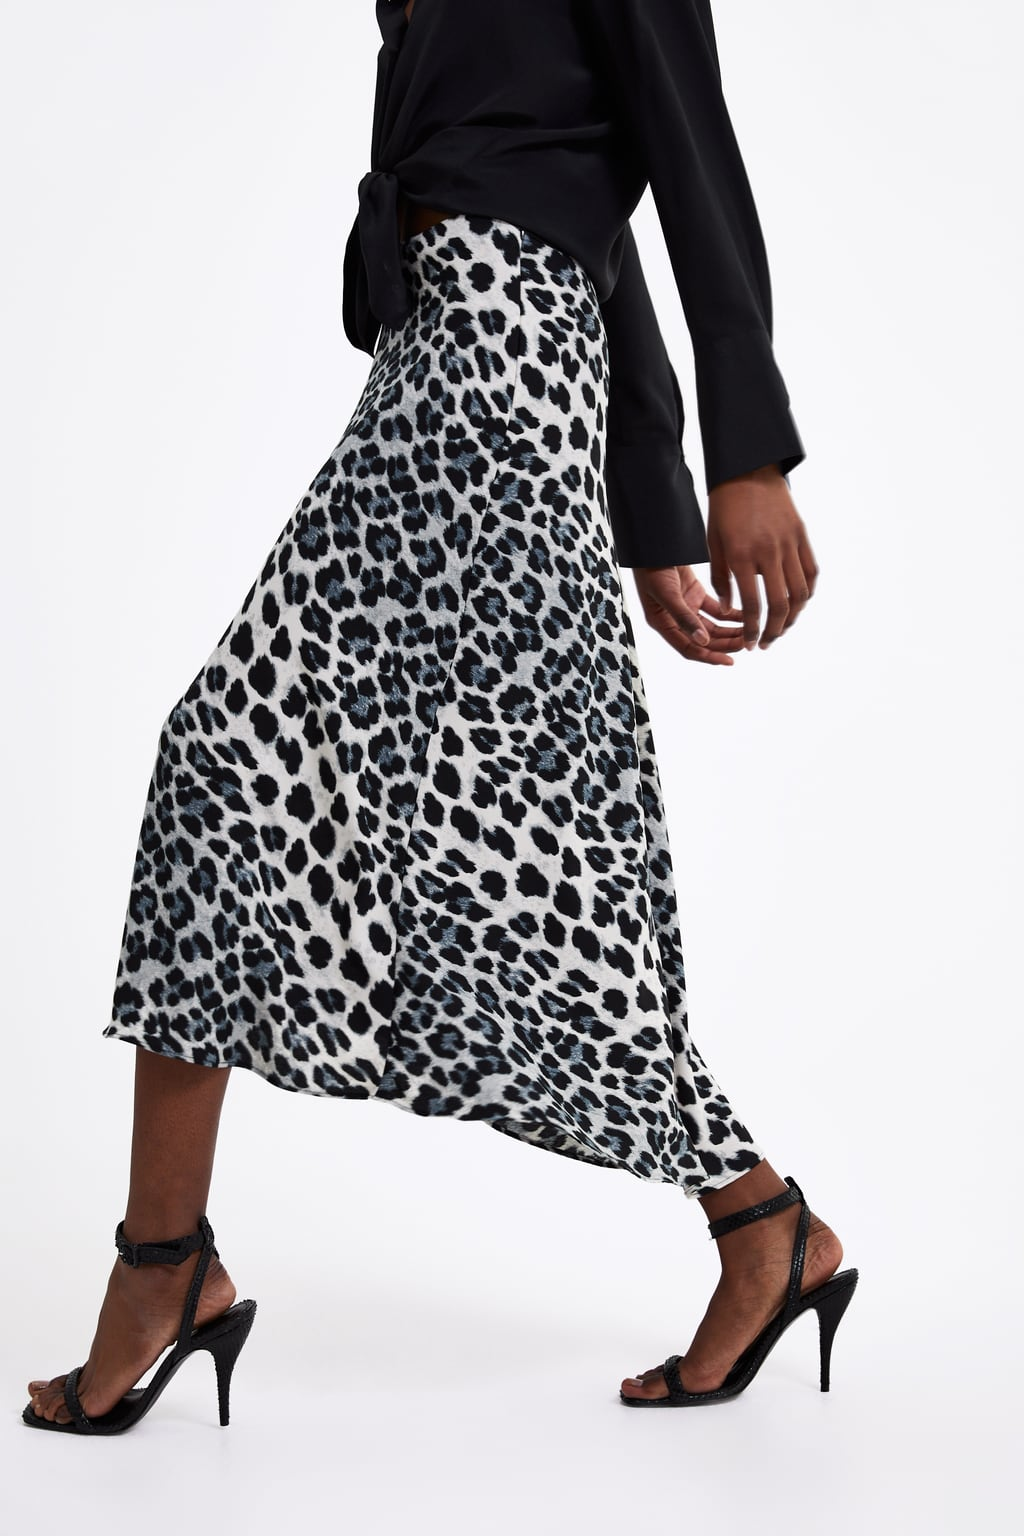 ANIMAL PRINT SKIRT - Flowy A-line skirt.